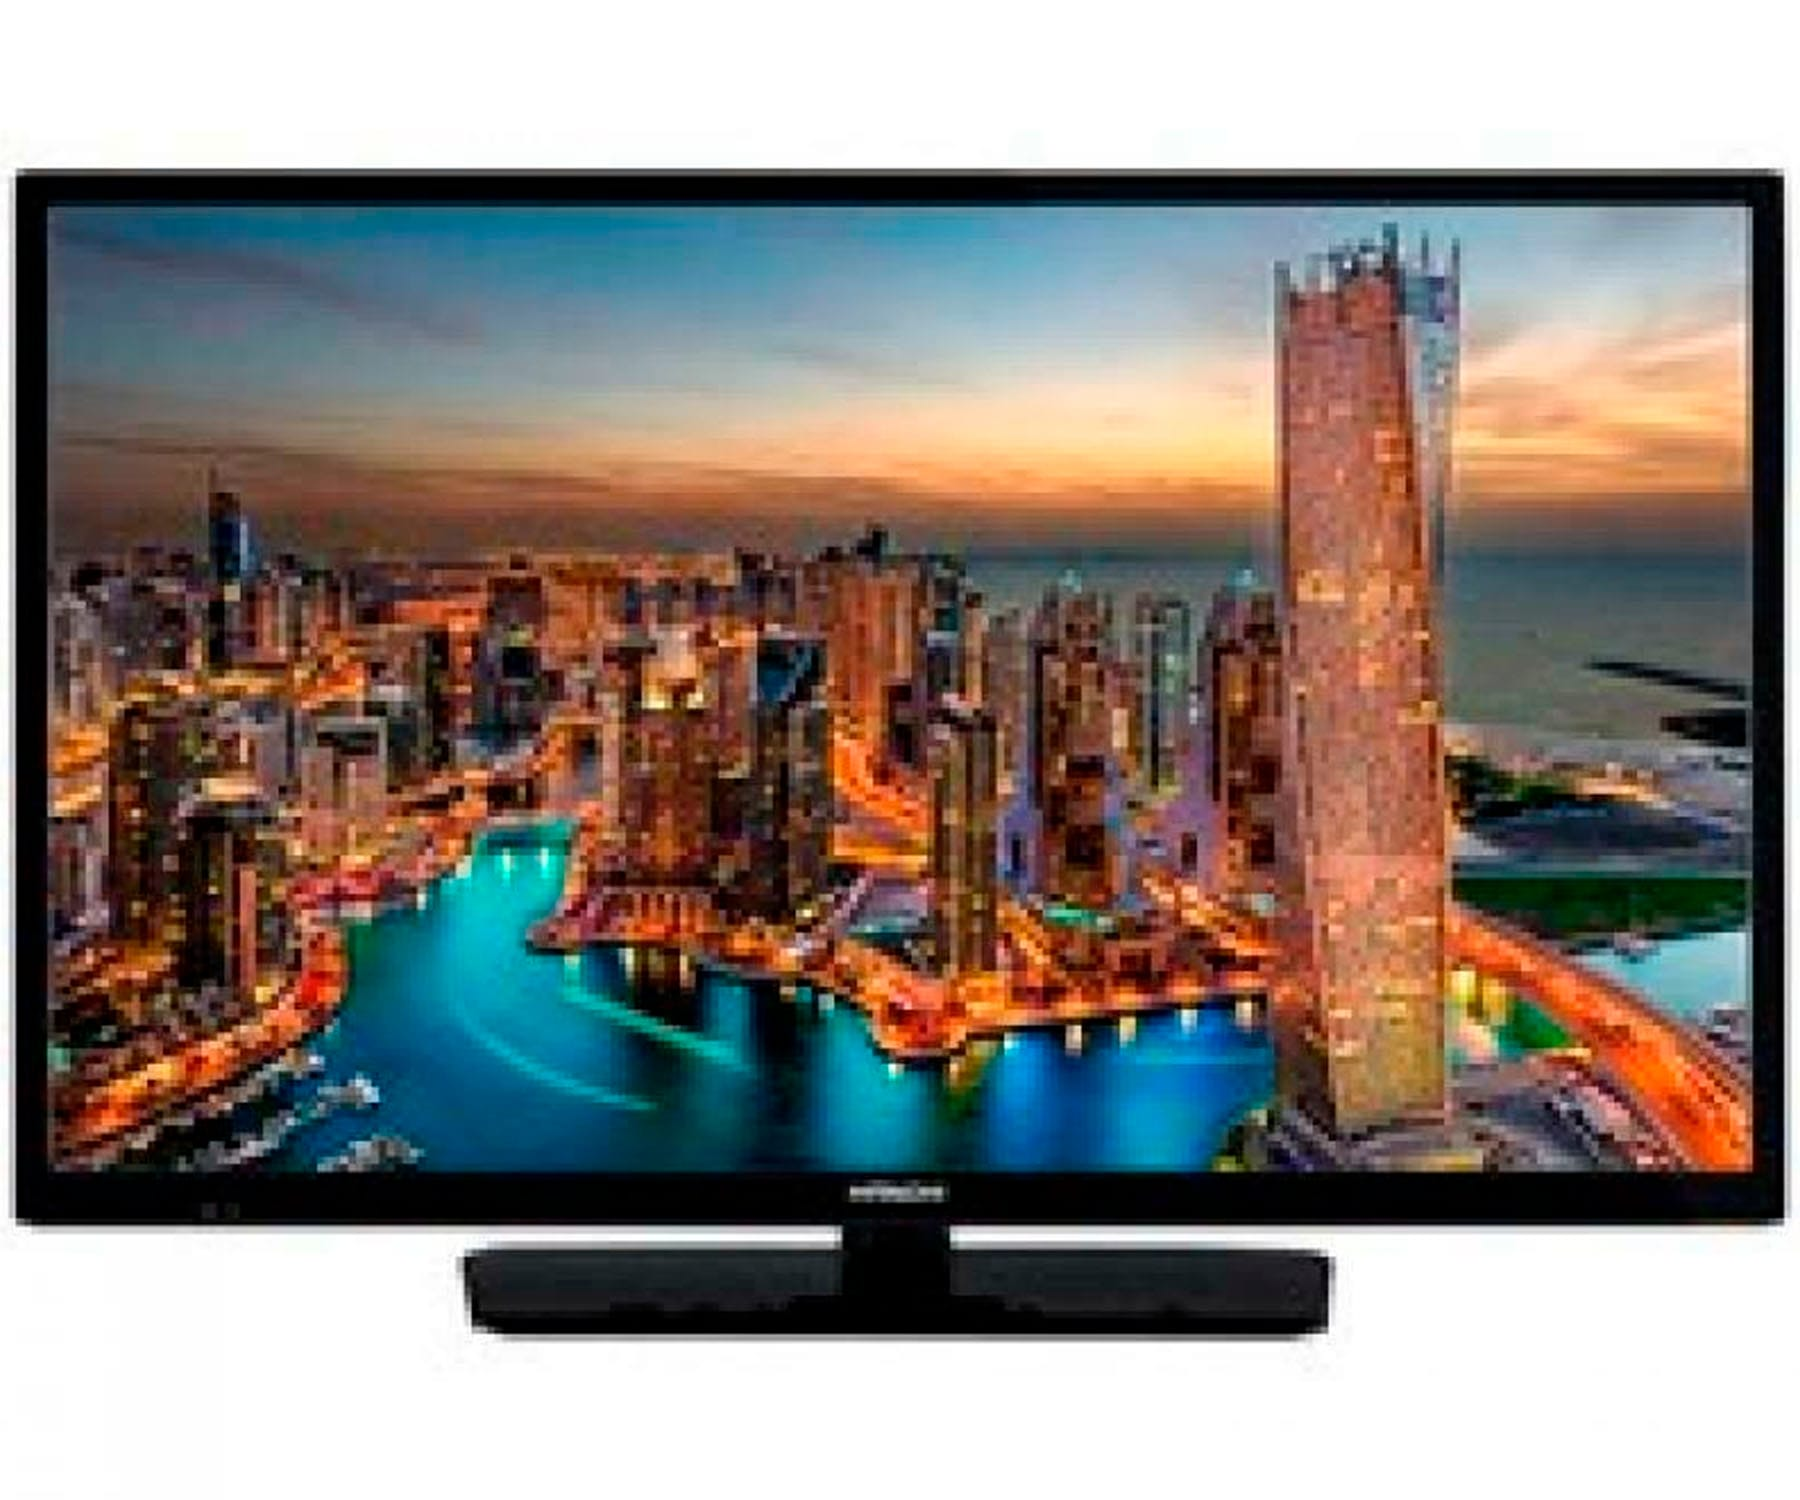 HITACHI 24HE2200 TELEVISOR 24'' LED HD READY HDR SMART TV 700BPI HDMI USB CON GOOGLE ASSISTANT